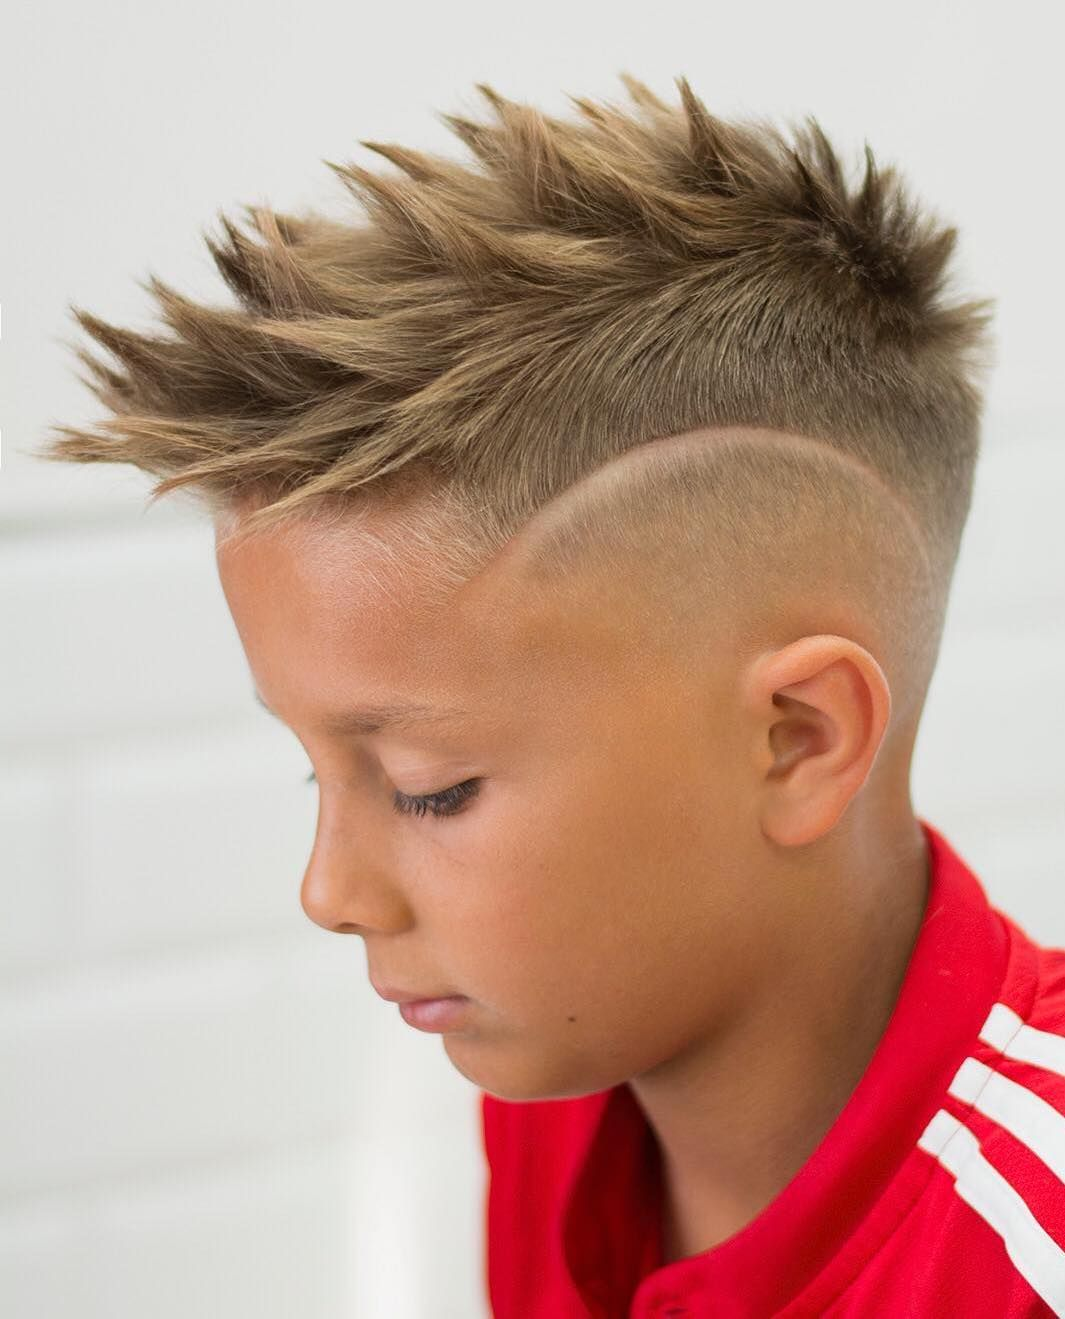 90 Cool Haircuts For Kids For 2020 Soccer Hairstyles Boy Haircuts Short Trendy Boys Haircuts